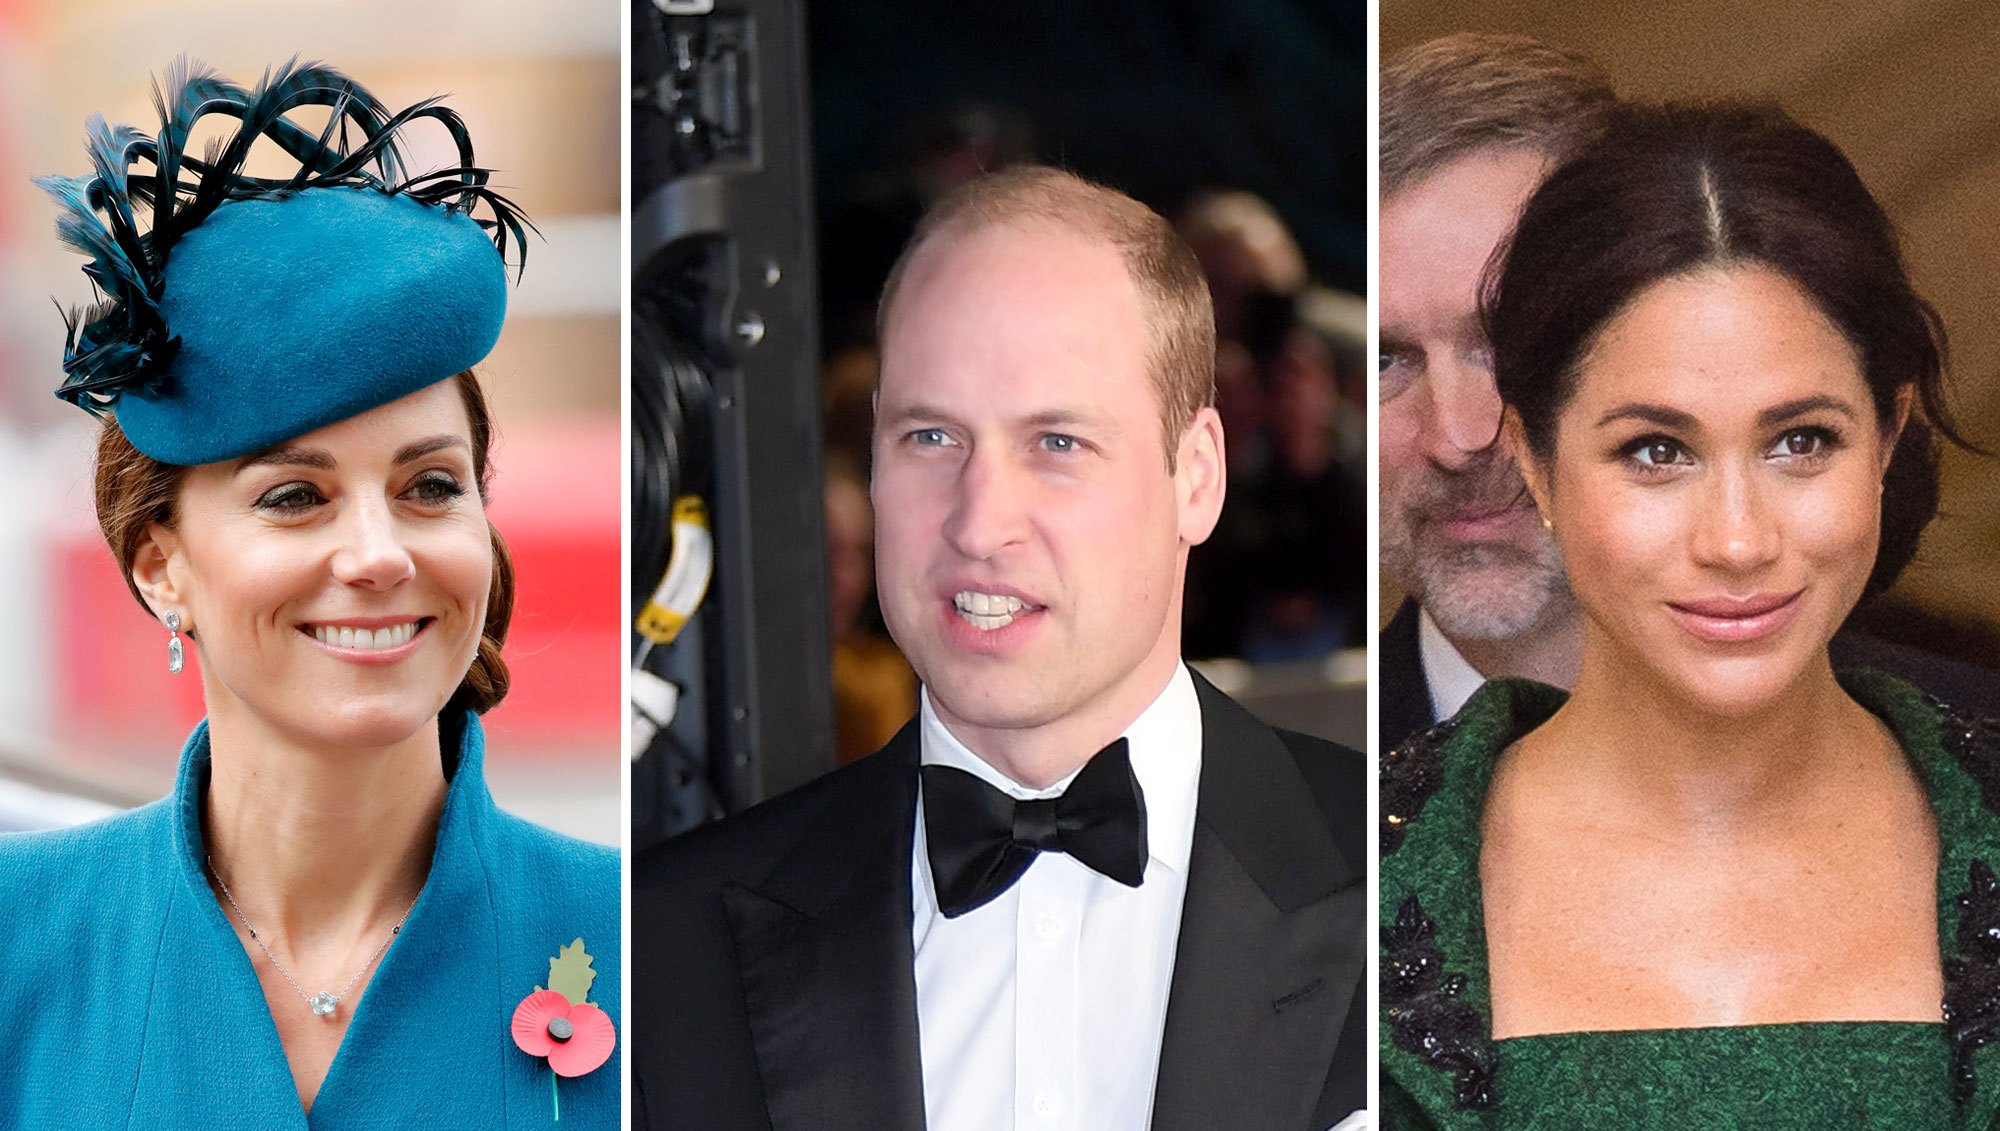 Duchess Kate and Prince William Visited Pregnant Duchess Meghan at Home on Easter